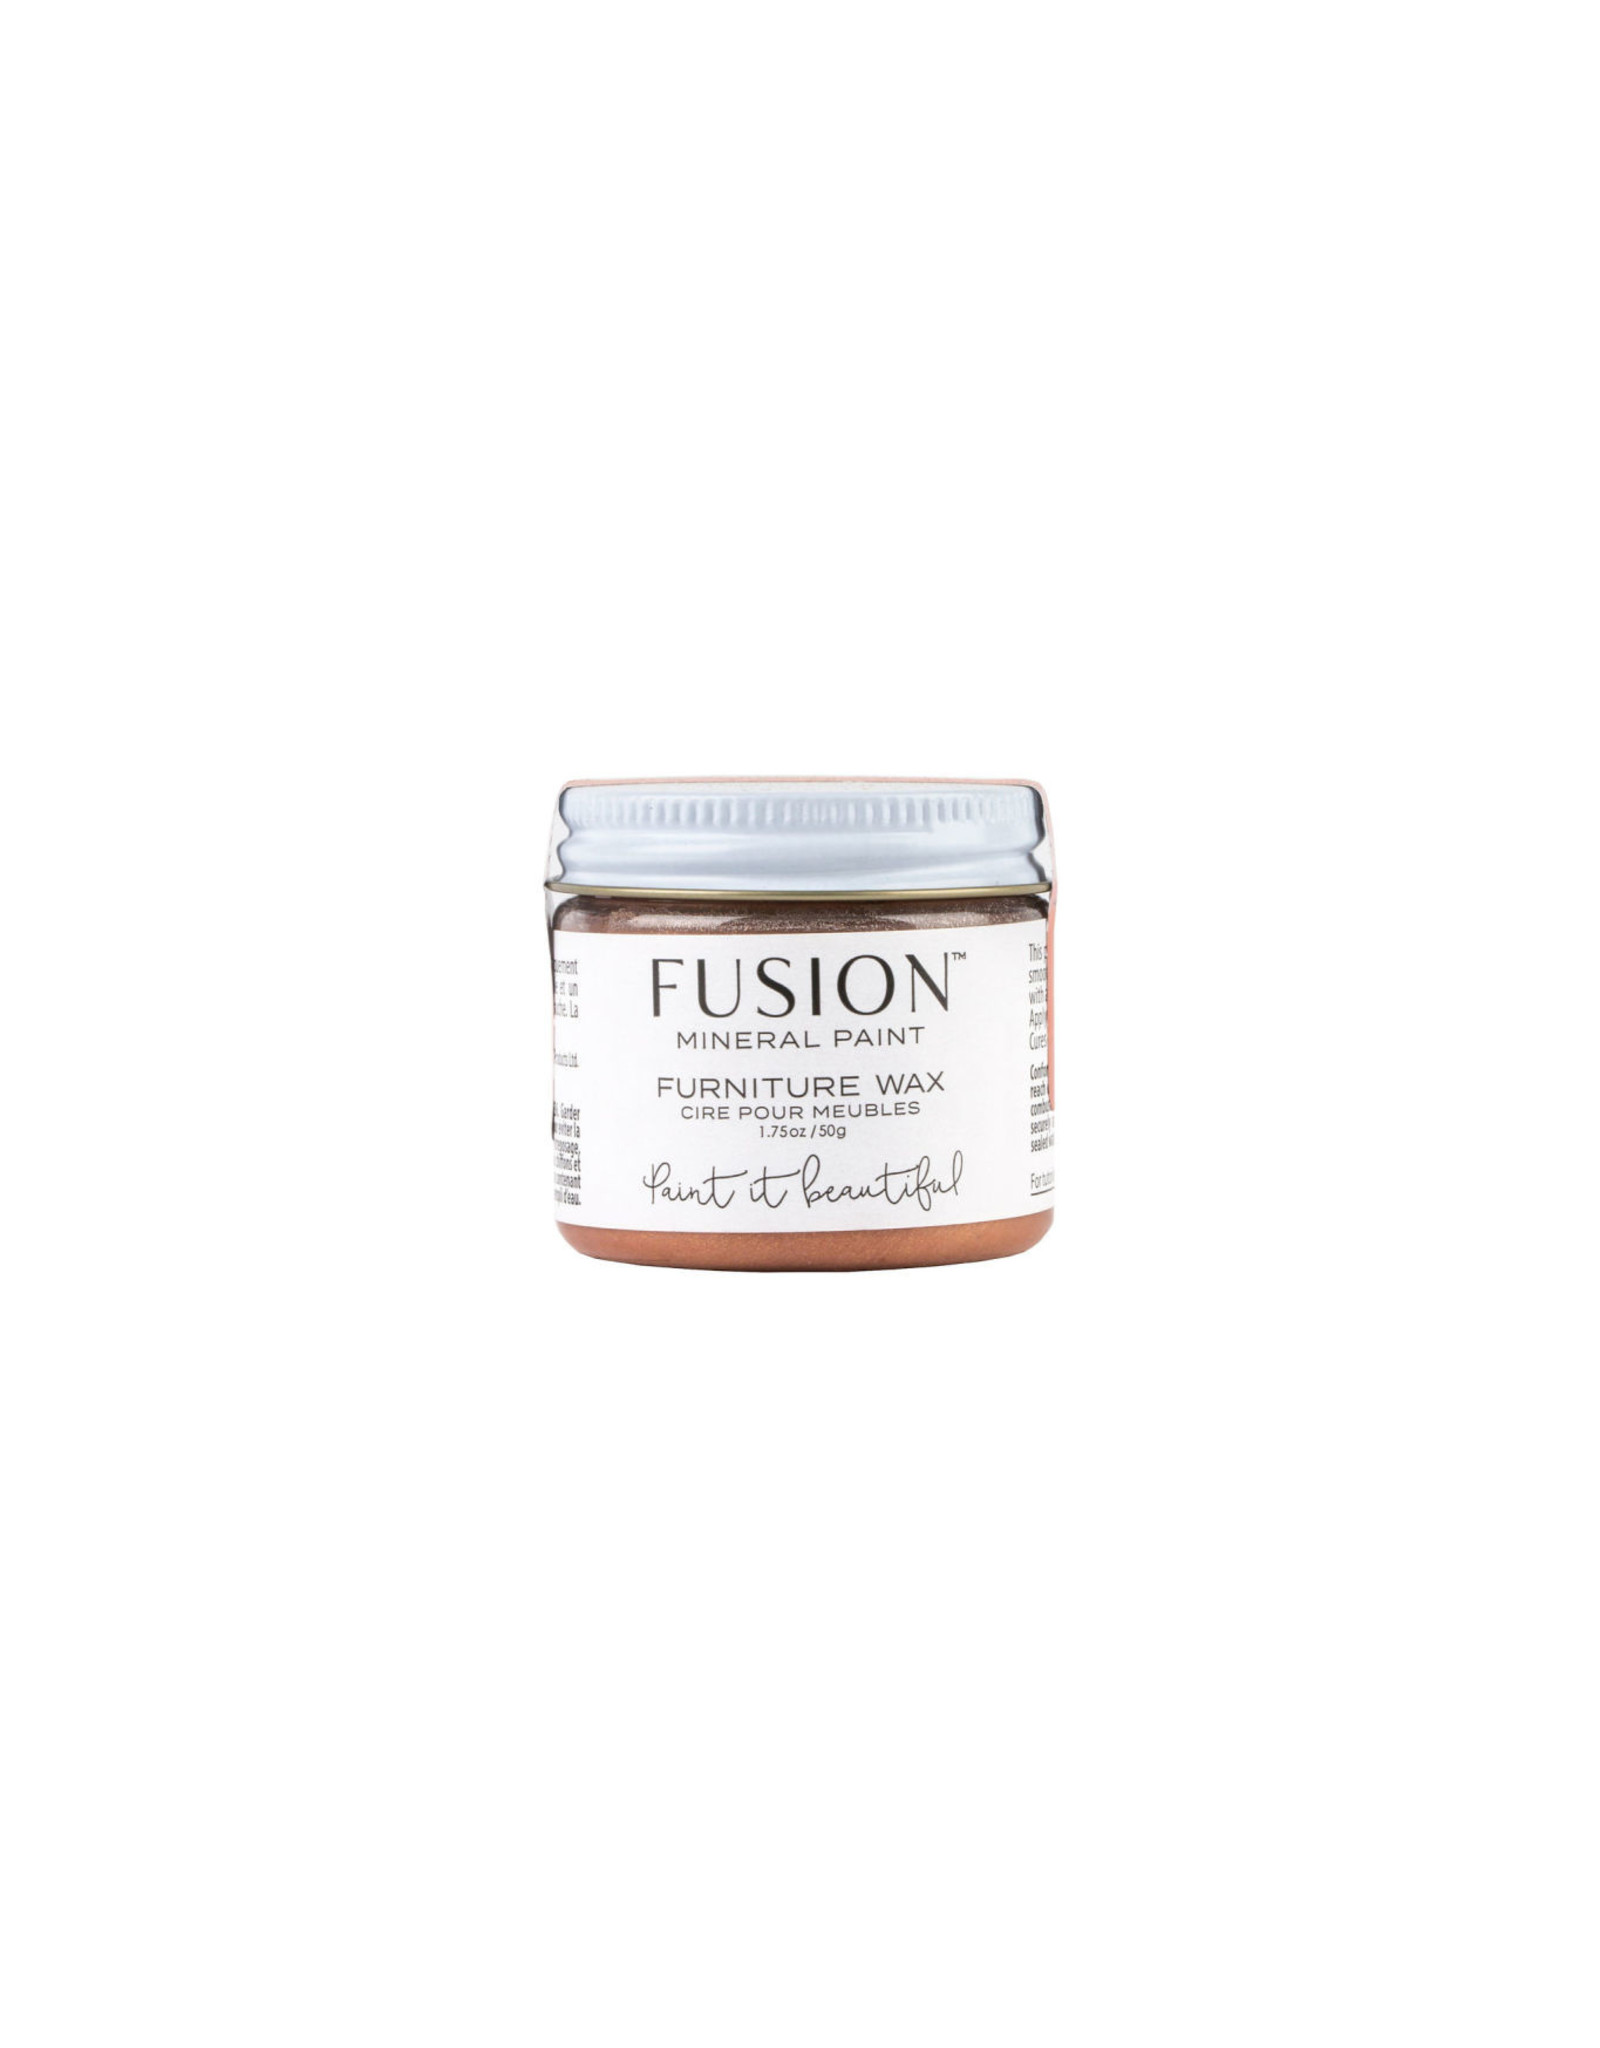 Fusion Mineral Paint Furniture Wax 50g - Copper